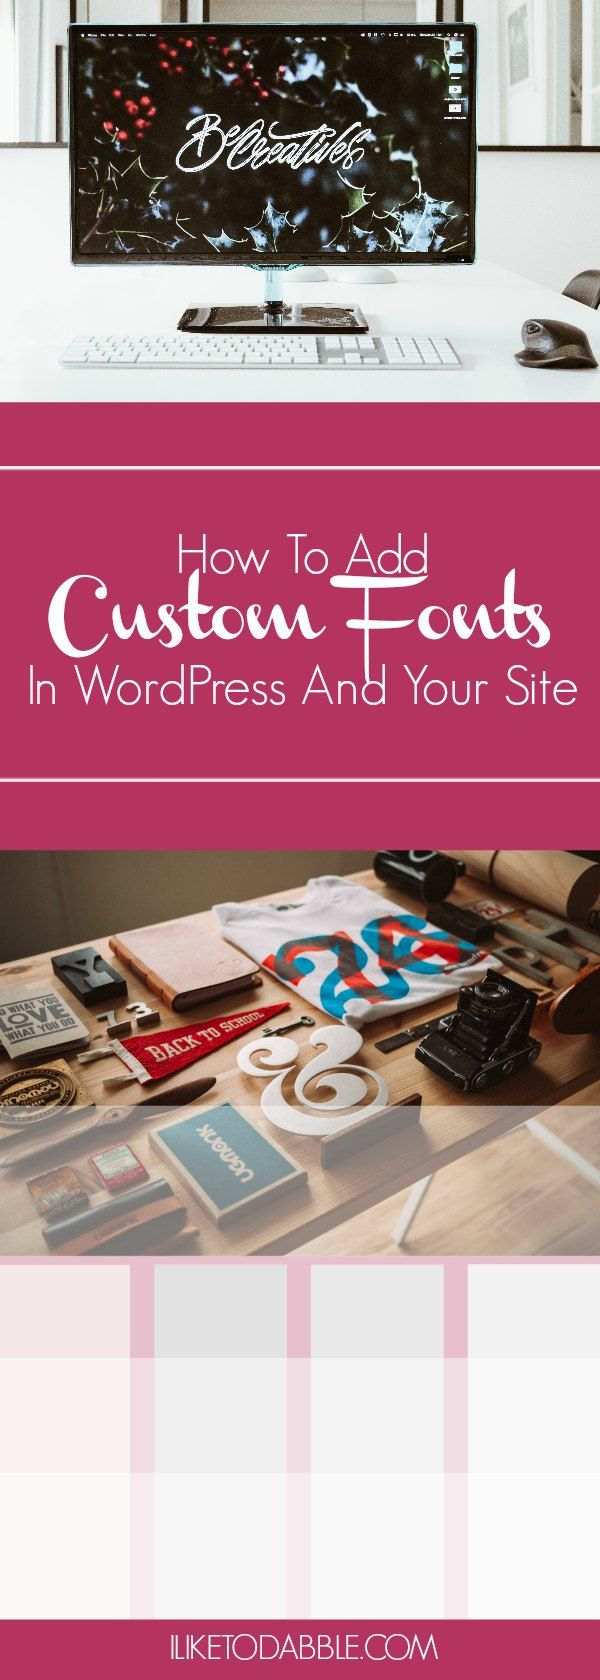 How To Add Custom Fonts In Your WordPress Site. Blogging. Blog tips. Blog design. Blog fonts. Wordpress how to's. boost your blog. blog tools. blog tricks.